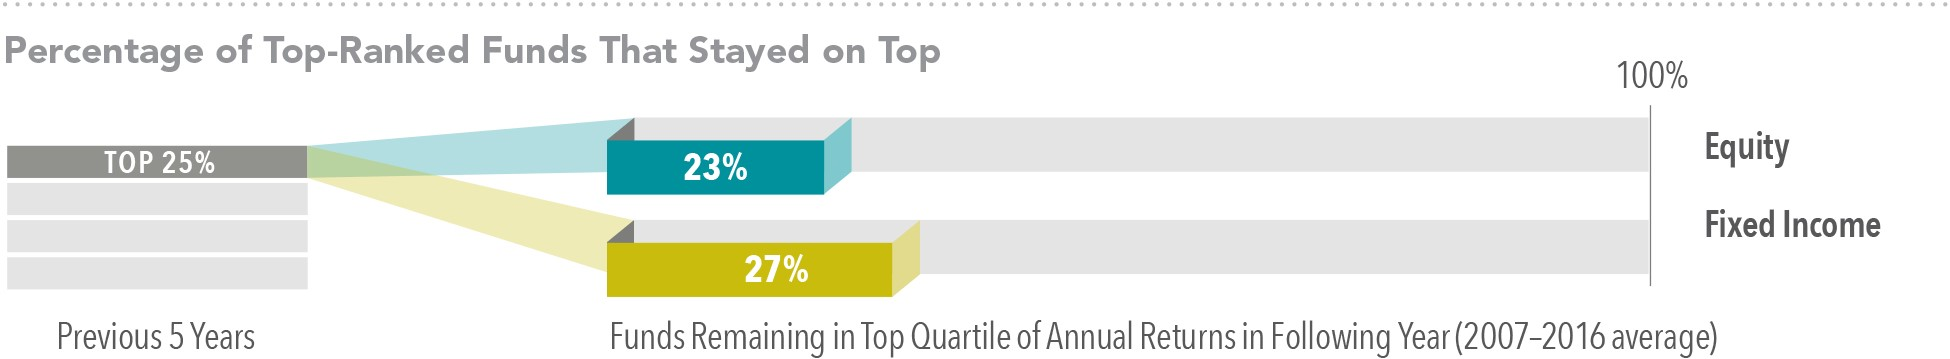 Source: *Mutual Fund Landscape 2017, Dimensional Fund Advisors. See Appendix[2] for important details on the study. Past performance is no guarantee of future results.